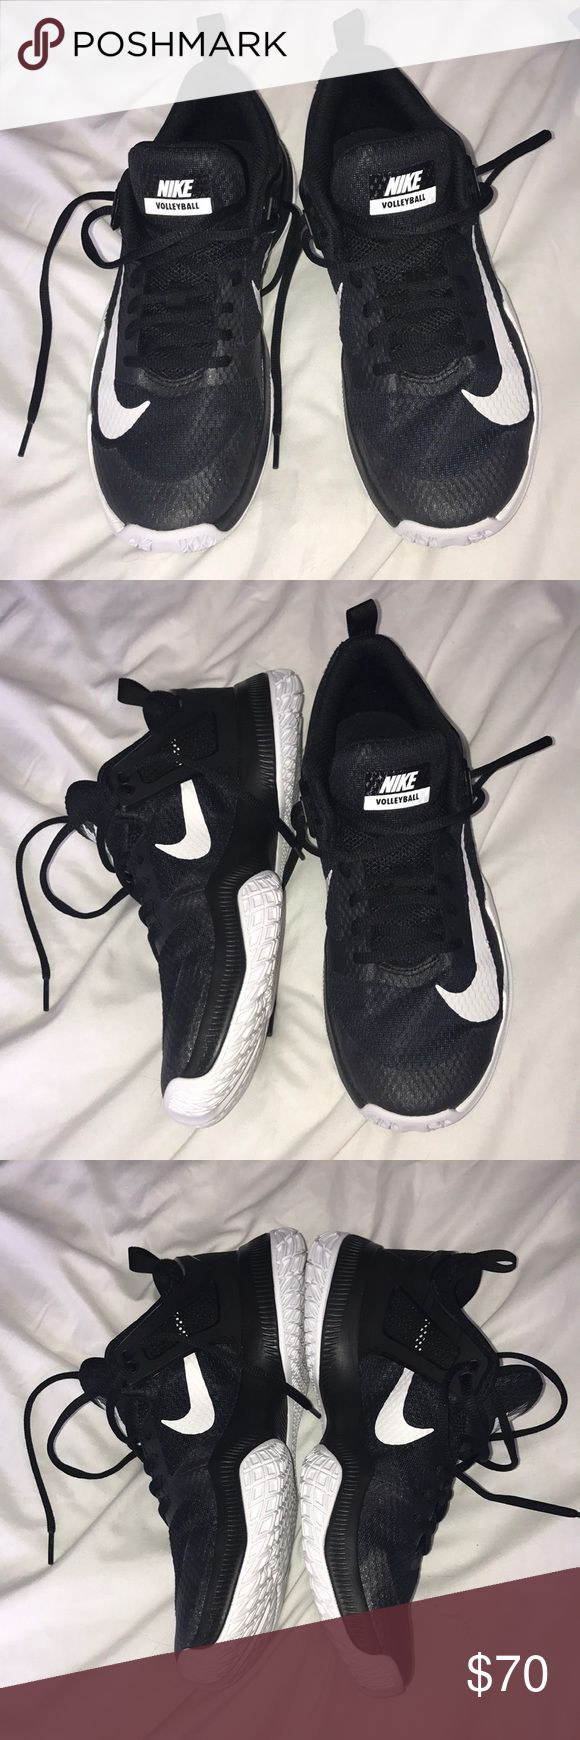 Black Nike volleyball shoes size 10 Black Nike volleyball shoes size 10 women's, newest edition. Worn less than 5 times. Comment if interested! Nike Shoes Sneakers